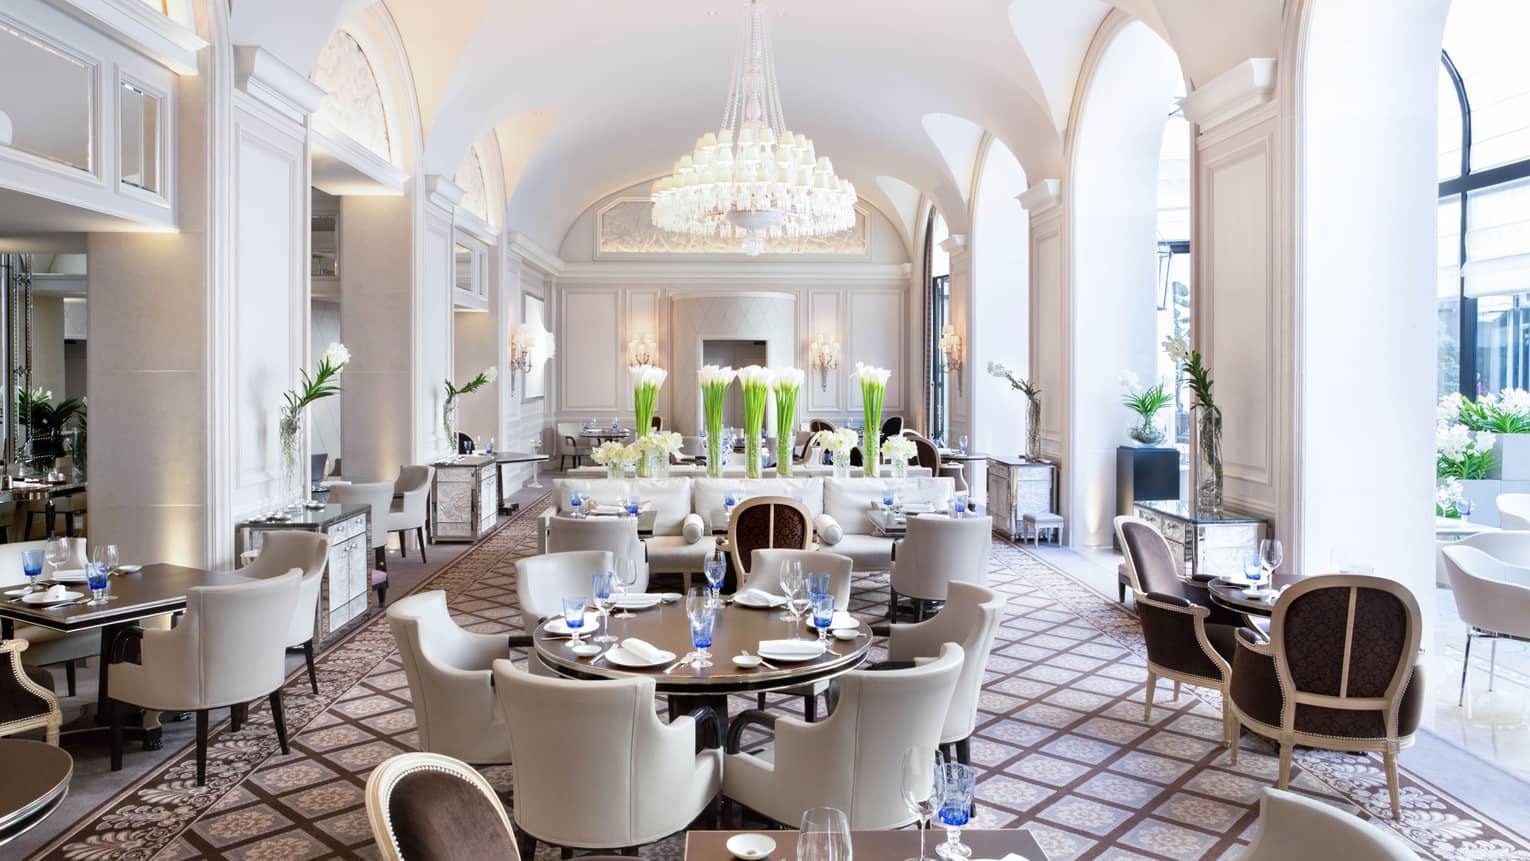 Restaurant Design Paris Paris Restaurants Fine Dining Four Seasons Hotel George V Paris